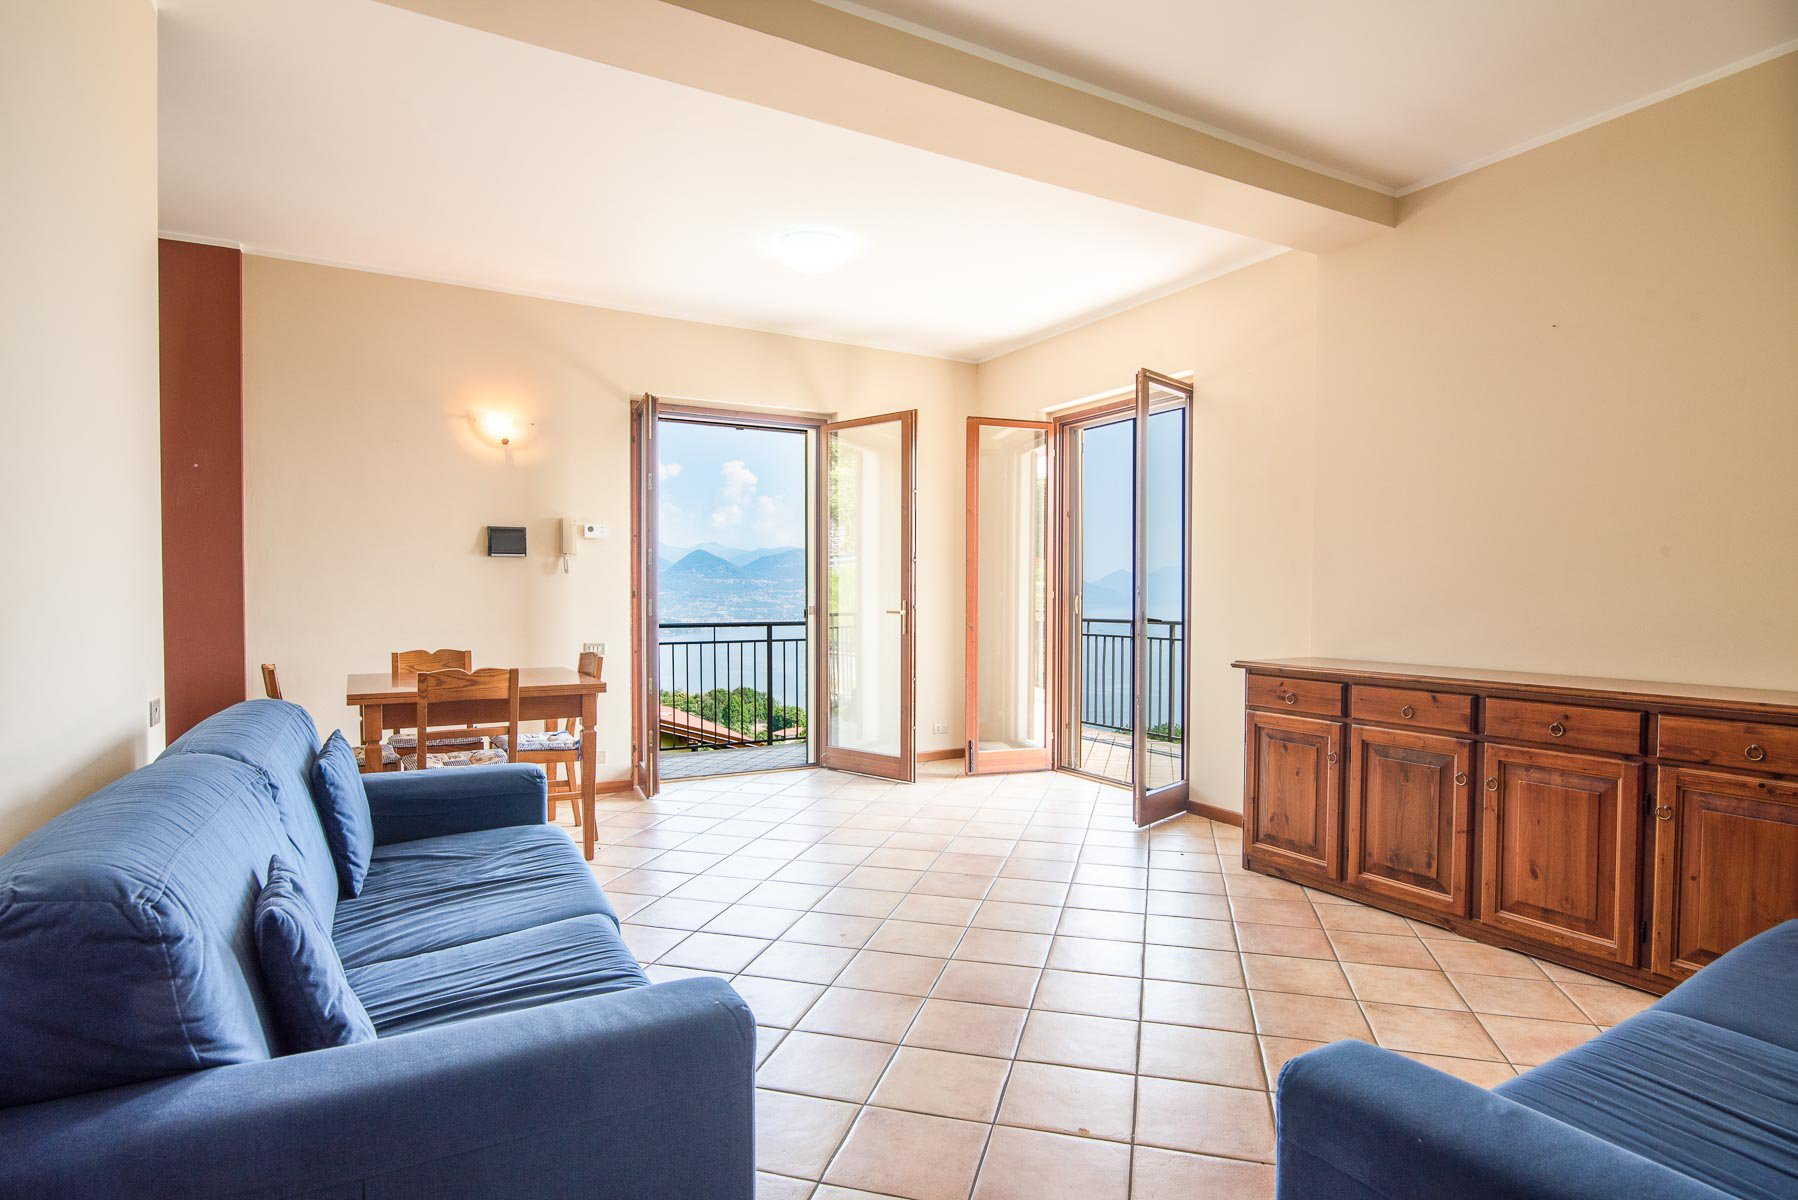 apartament for sale in Stresa with a lake view- living room with view